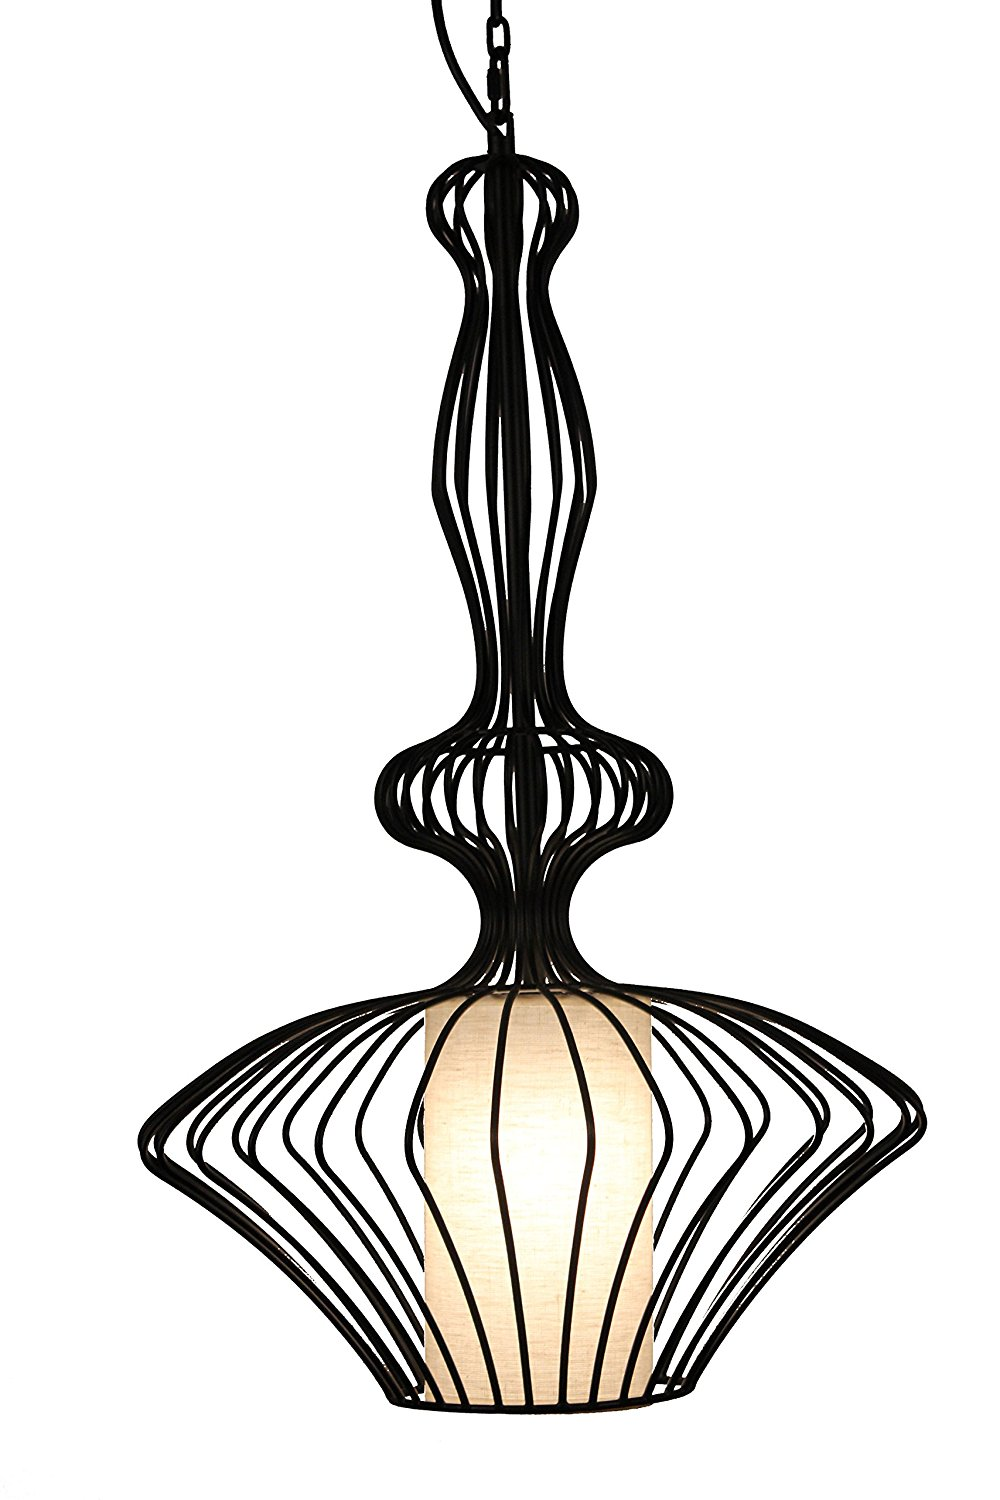 Cheap rustic wrought iron chandelier find rustic wrought iron get quotations chinese style wrought iron chandelier hotels wrought iron chandelier chandelier living room club arubaitofo Image collections